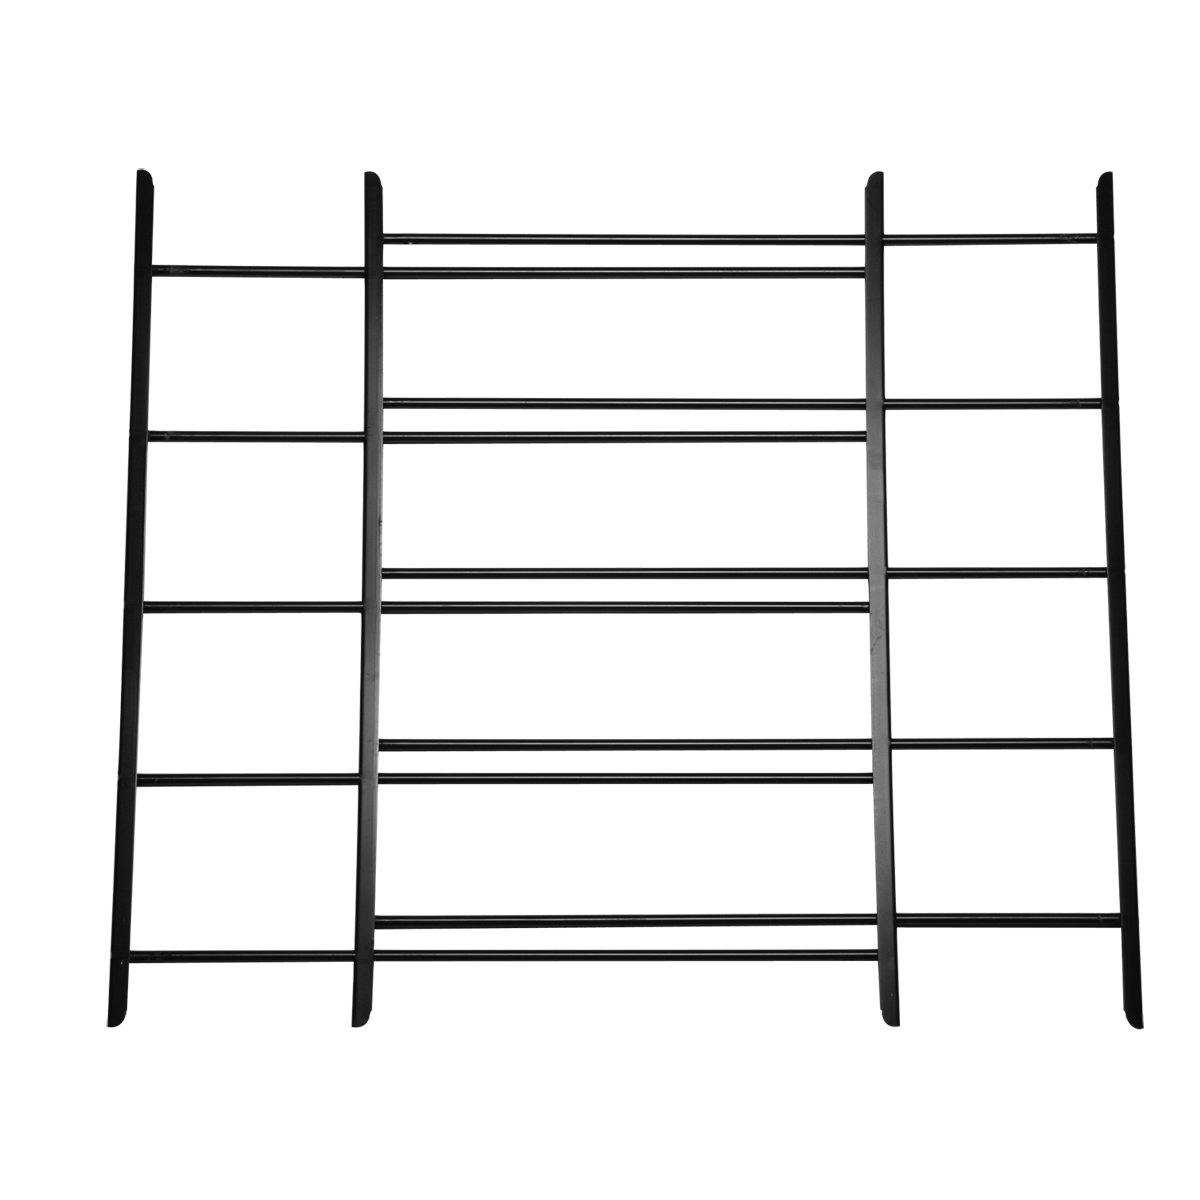 Knape & Vogt John Sterling Non-Opening Style 5-Bar Child Safety and Window Guard, Black, 1125-DB